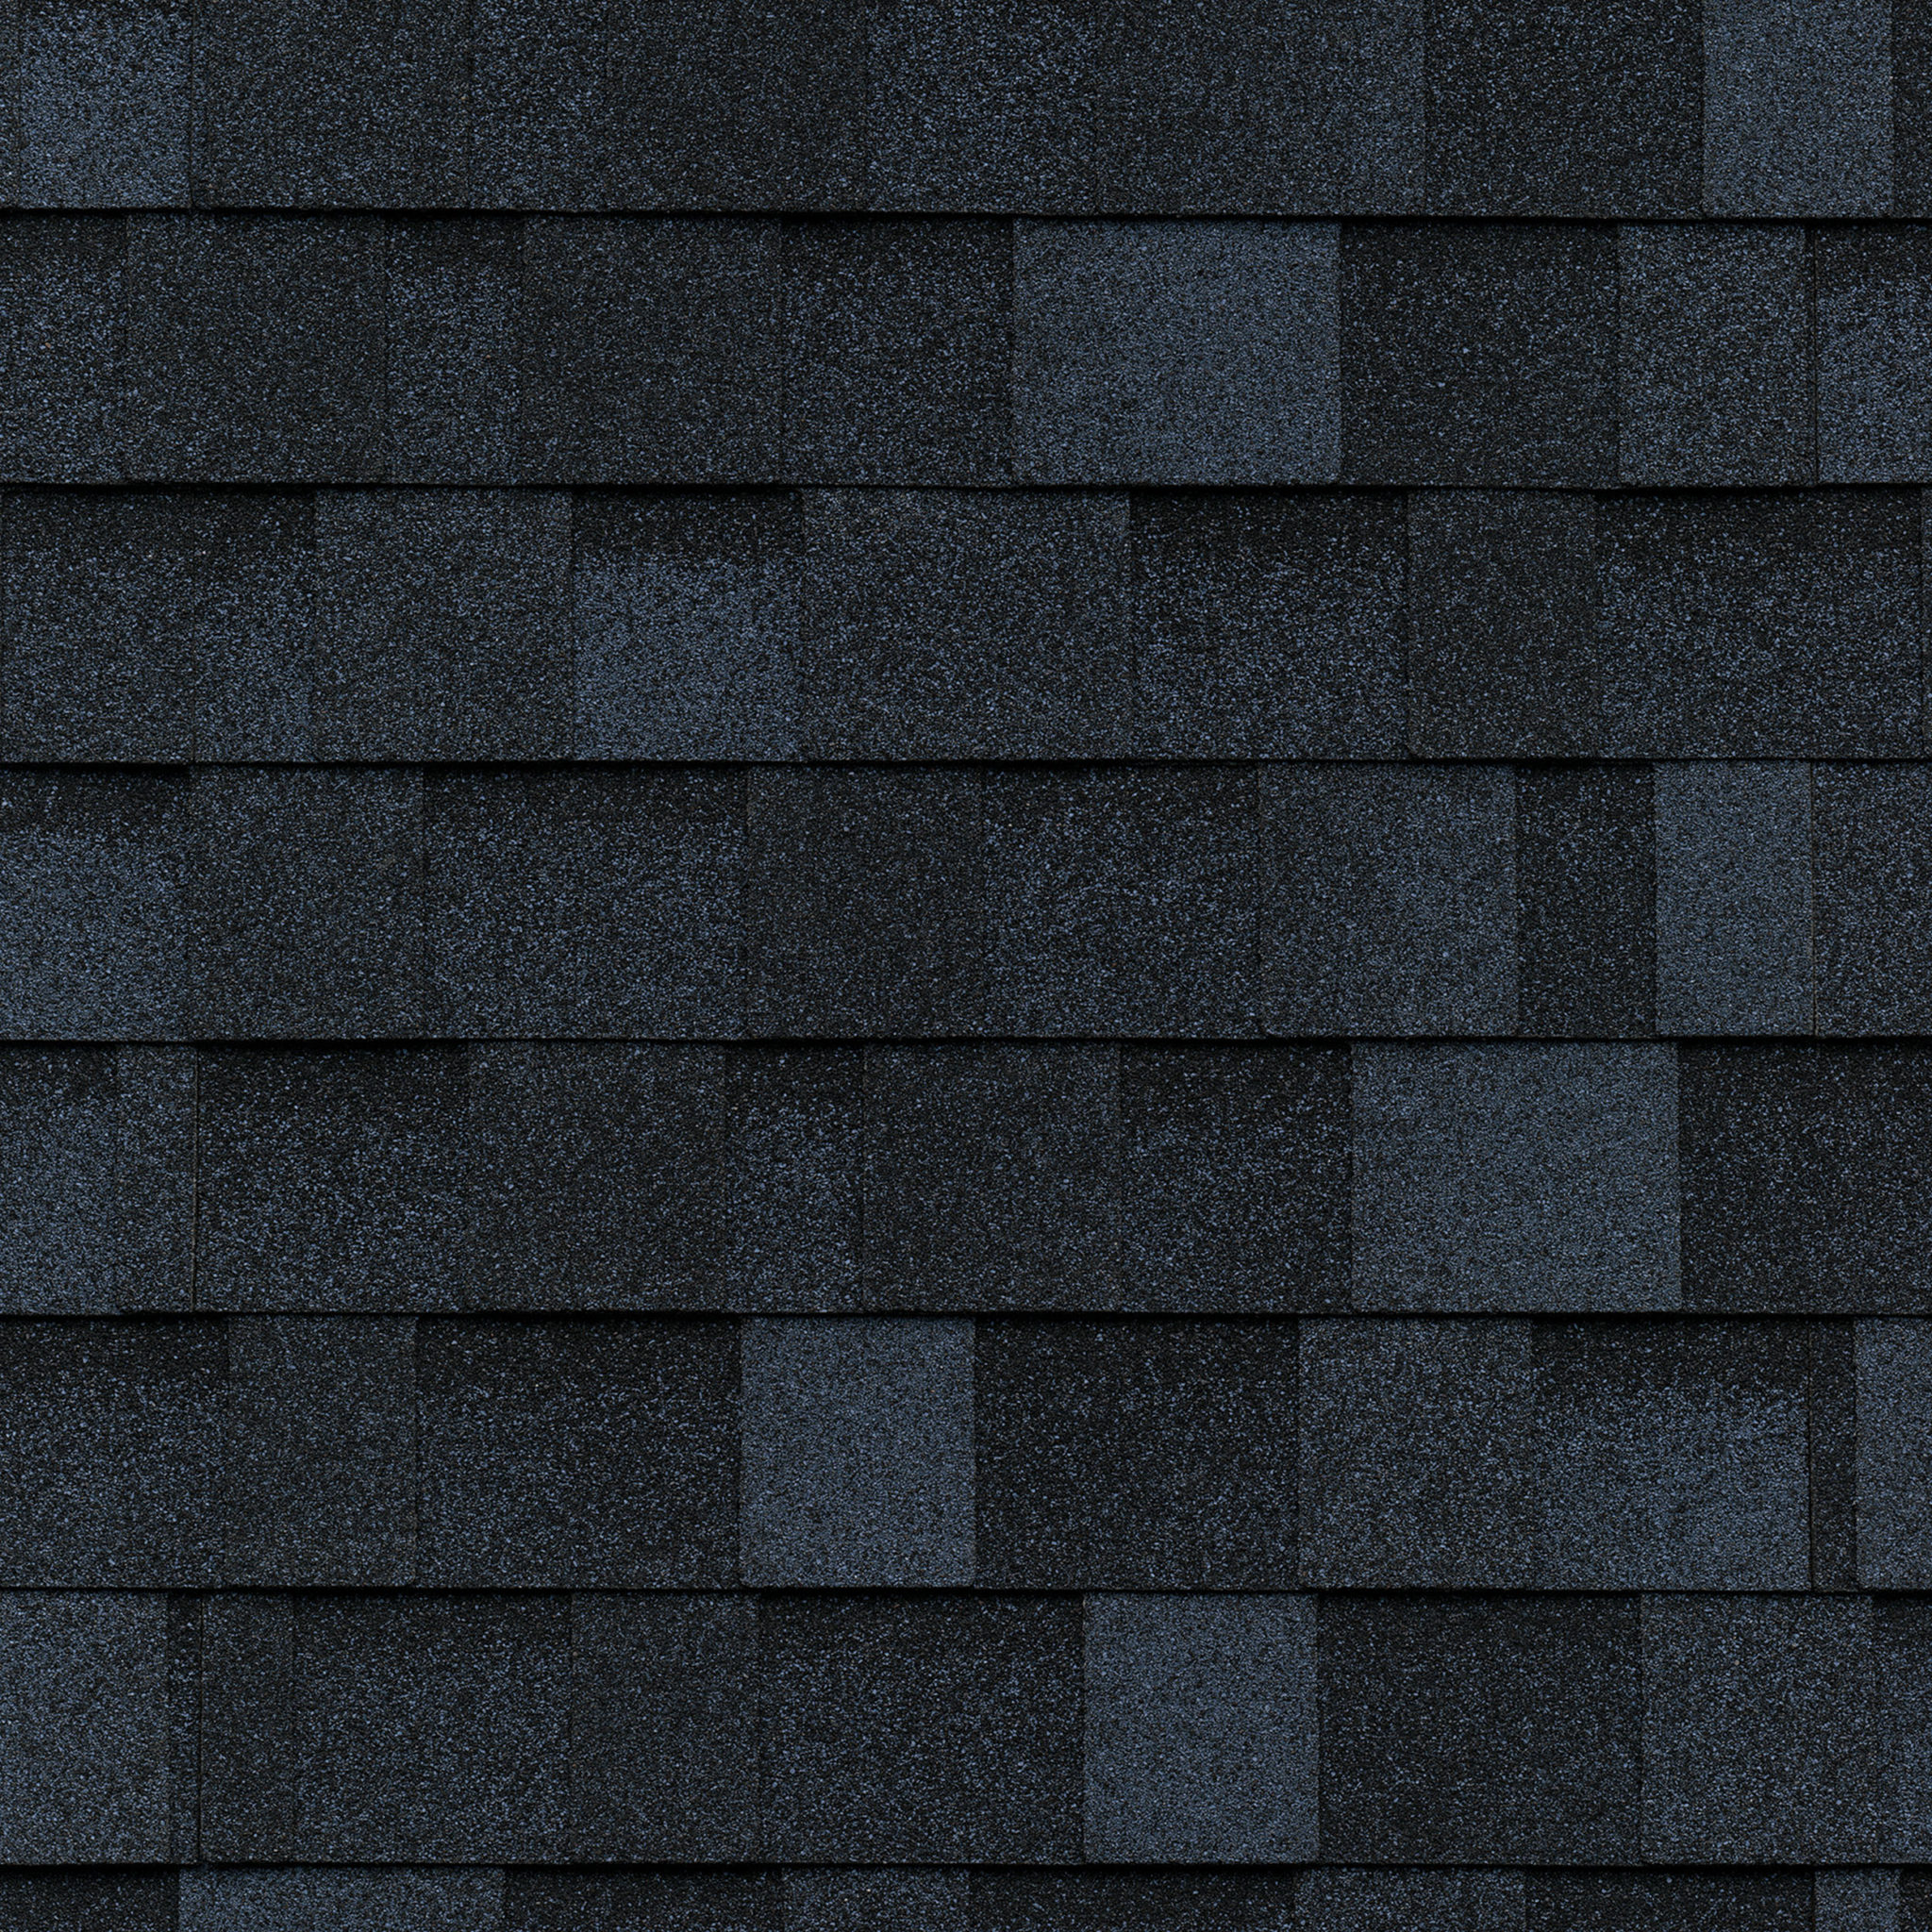 IKO_Shingles_Cambridge_National-Blue.jpg